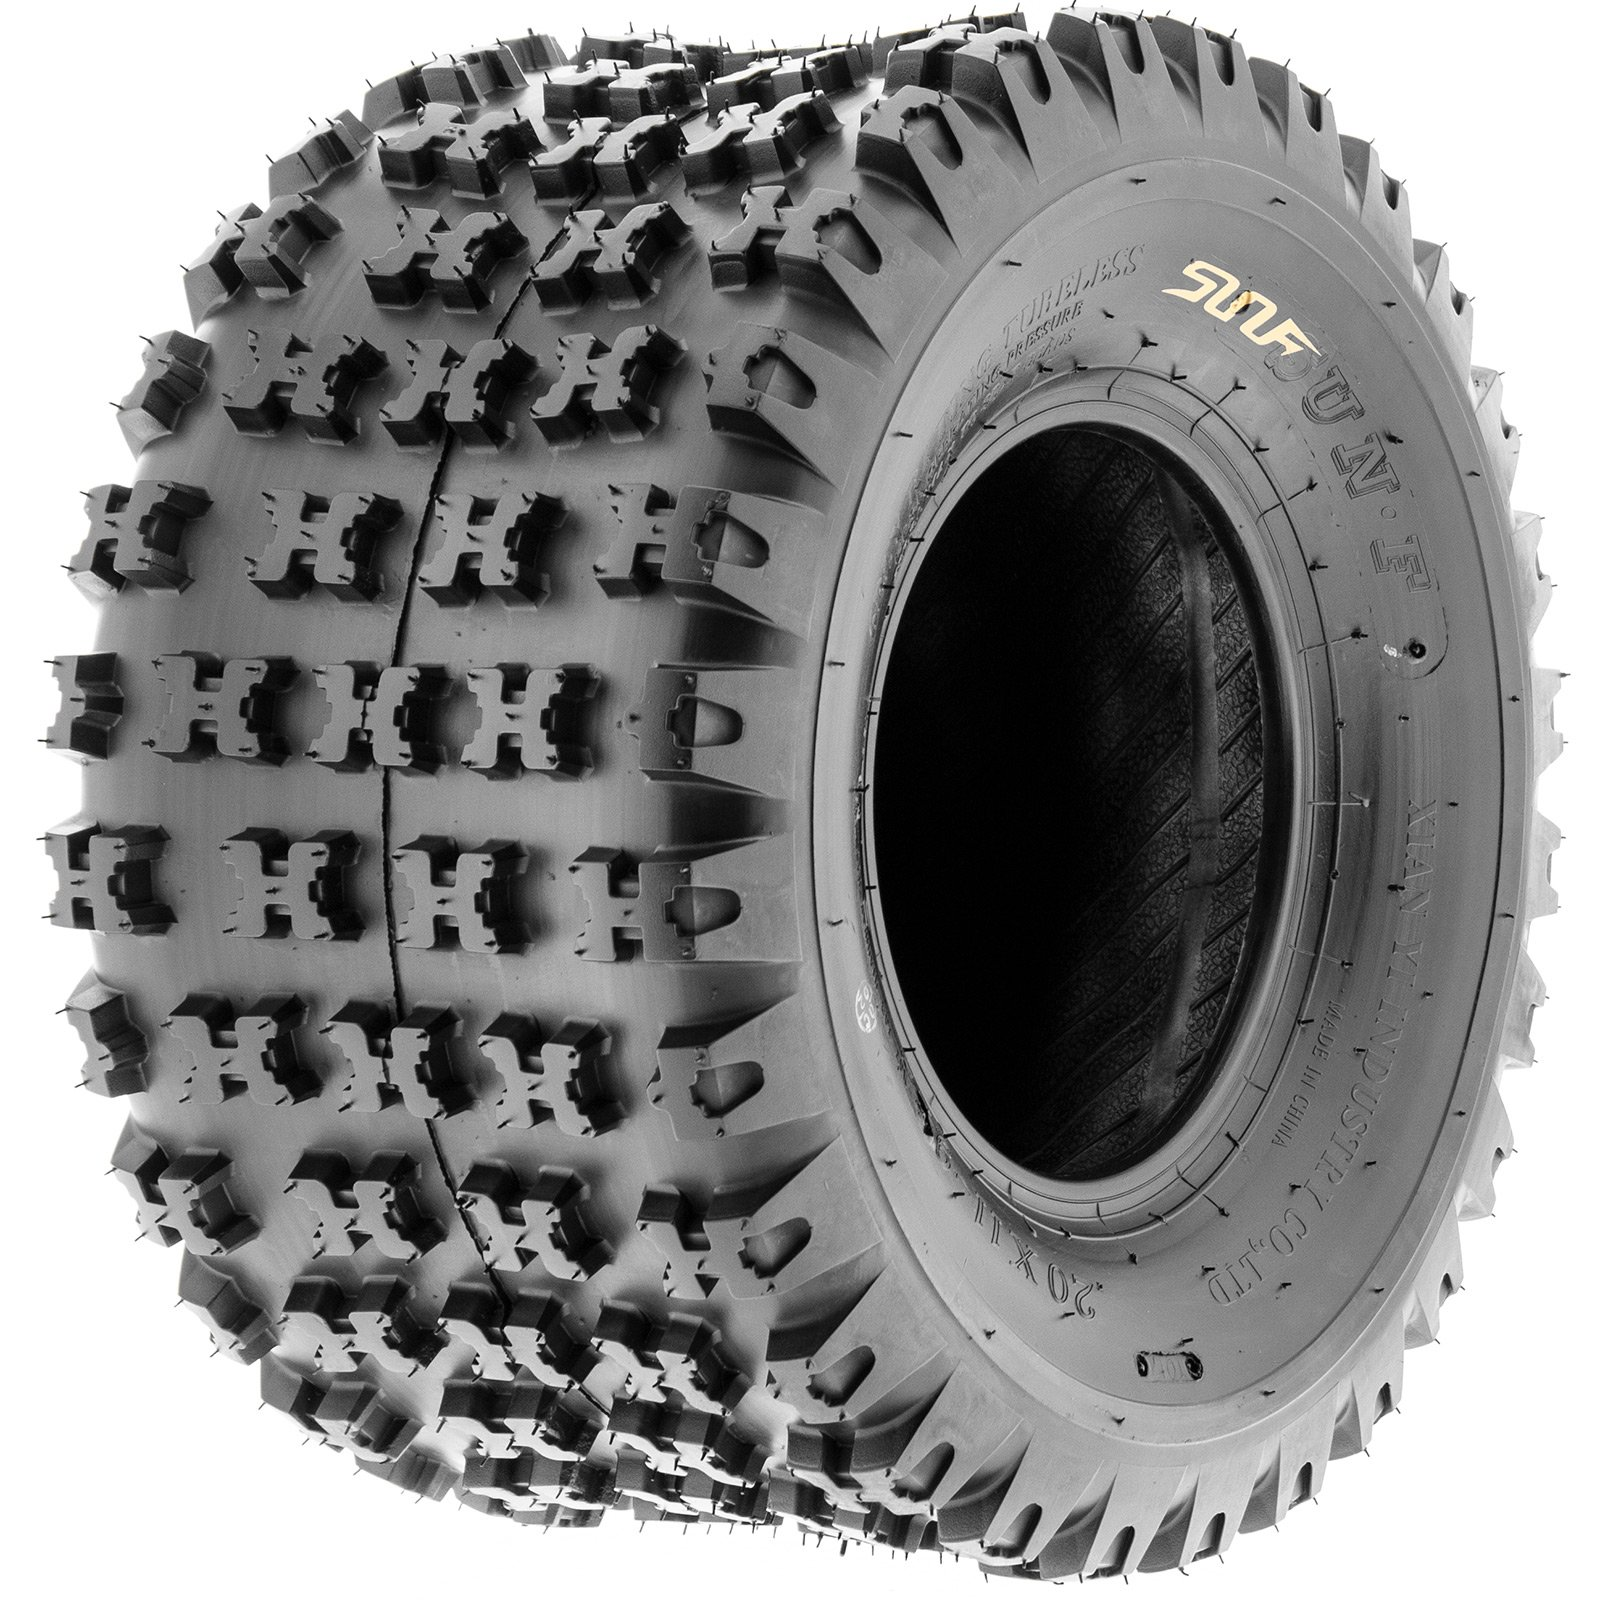 SunF Knobby Sport ATV Tires 20x6-10 & 18x10-8 4/6 PR A031 (Complete set of 4) by SunF (Image #10)